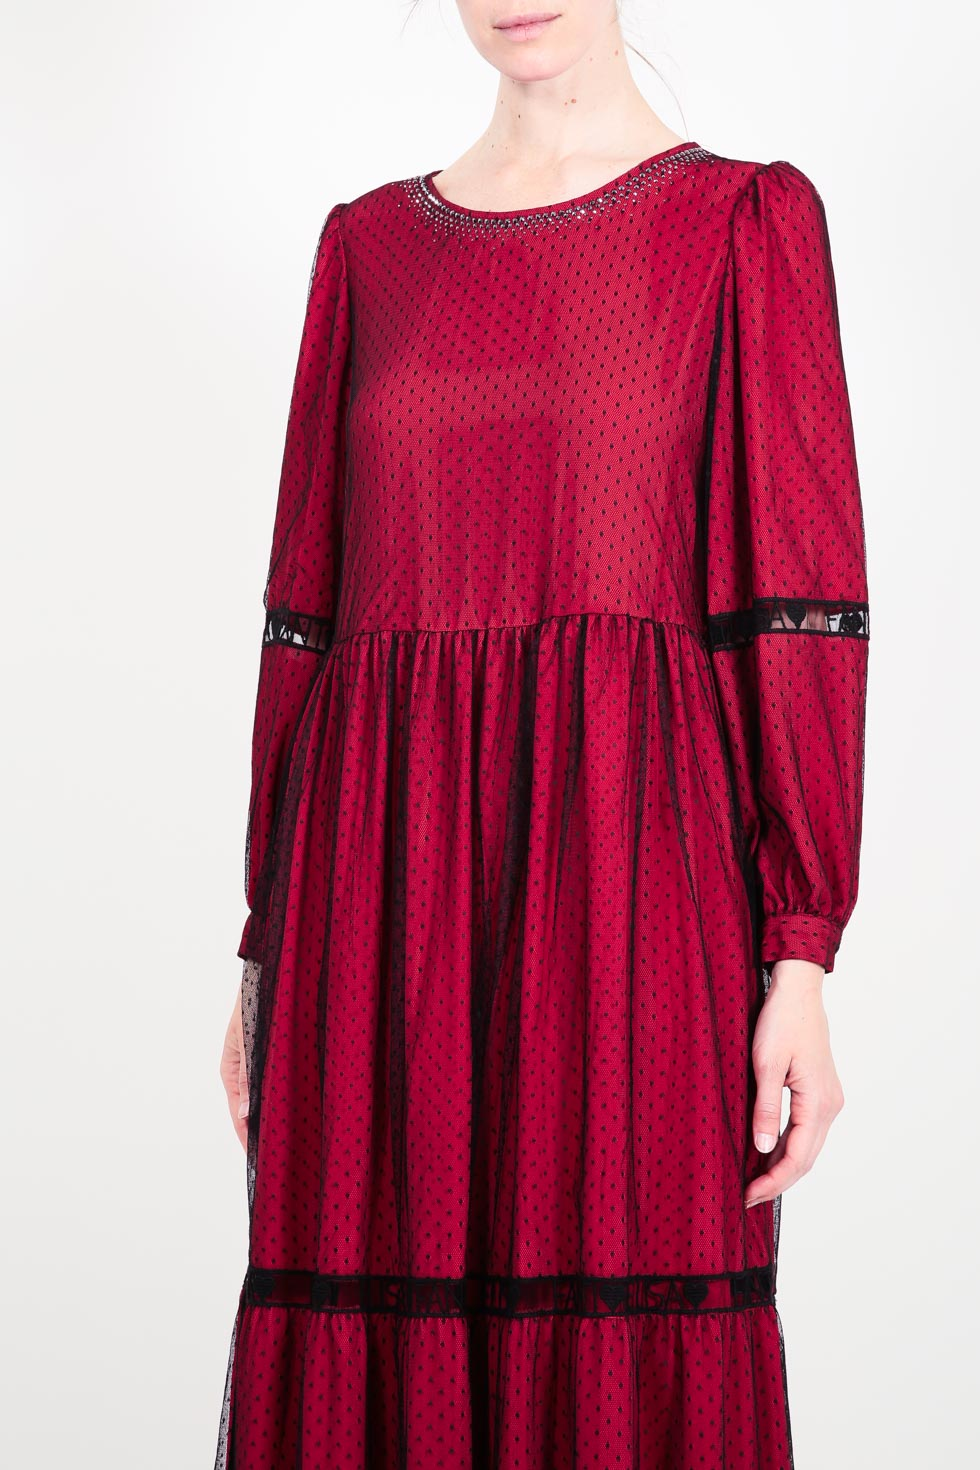 ELISA FANTI F/W 21/22 SERIE ForeveRed ABITO LUNGO IN TULLE PLUMETISSE E STRASS